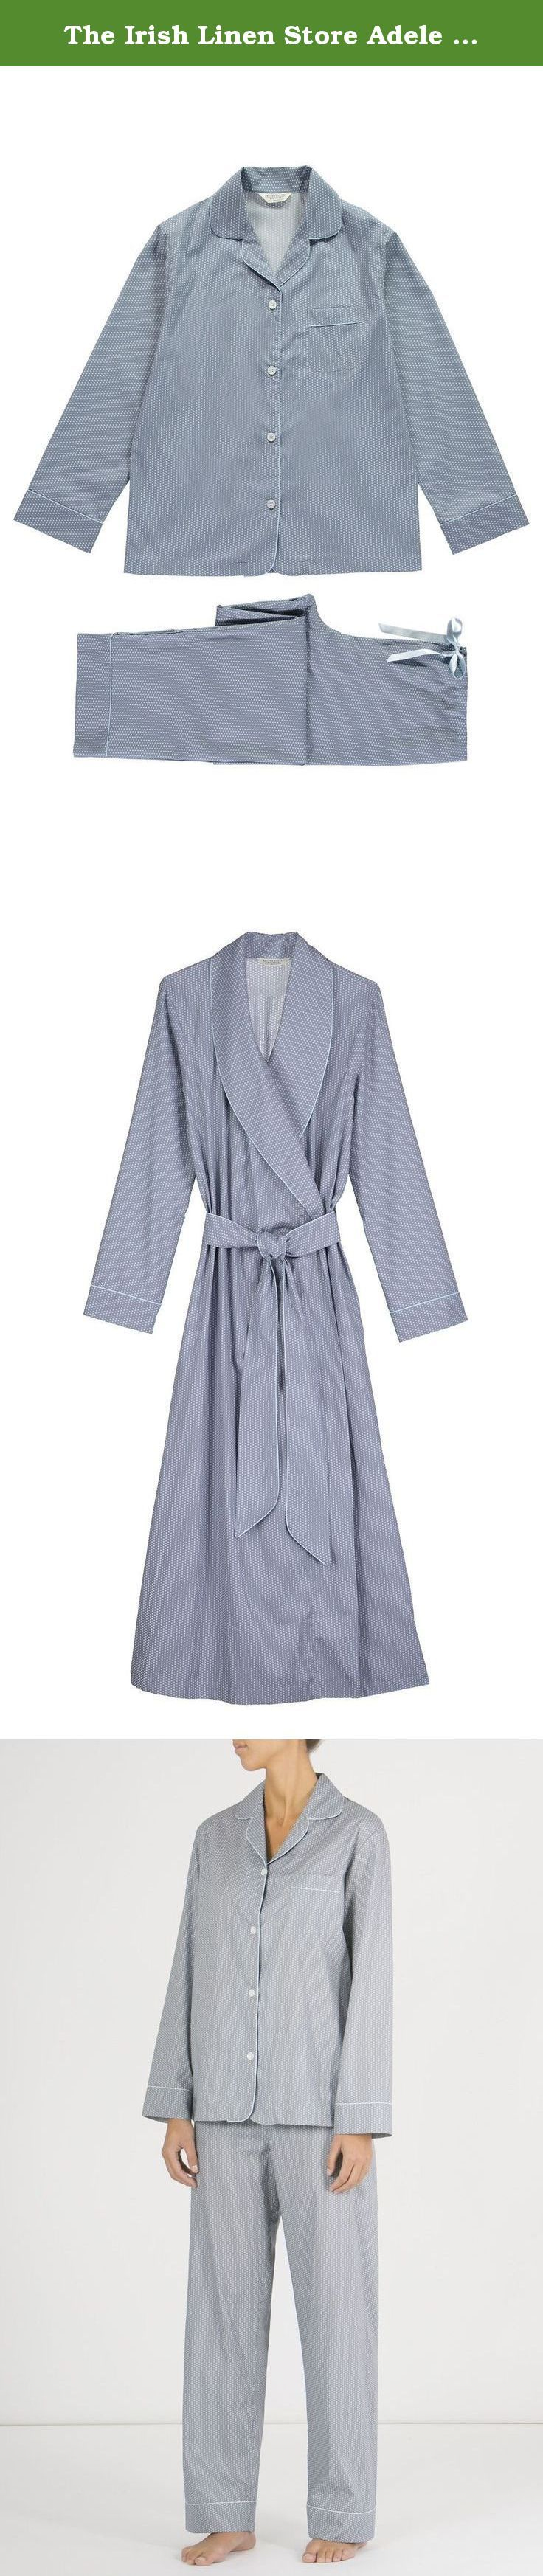 The Irish Linen Store Adele Classic Cotton Pyjamas Large. These lightweight pyjamas are truly lovely. They are perfect for those who prefer lighter weight nightwear. All pyjamas are finished with pretty piping detail and a comfortable half elastic half ribbon drawstring waist for comfort. The classic cotton pyjamas are made from fine woven stripe cotton in fine, cool, printed cotton lawn.